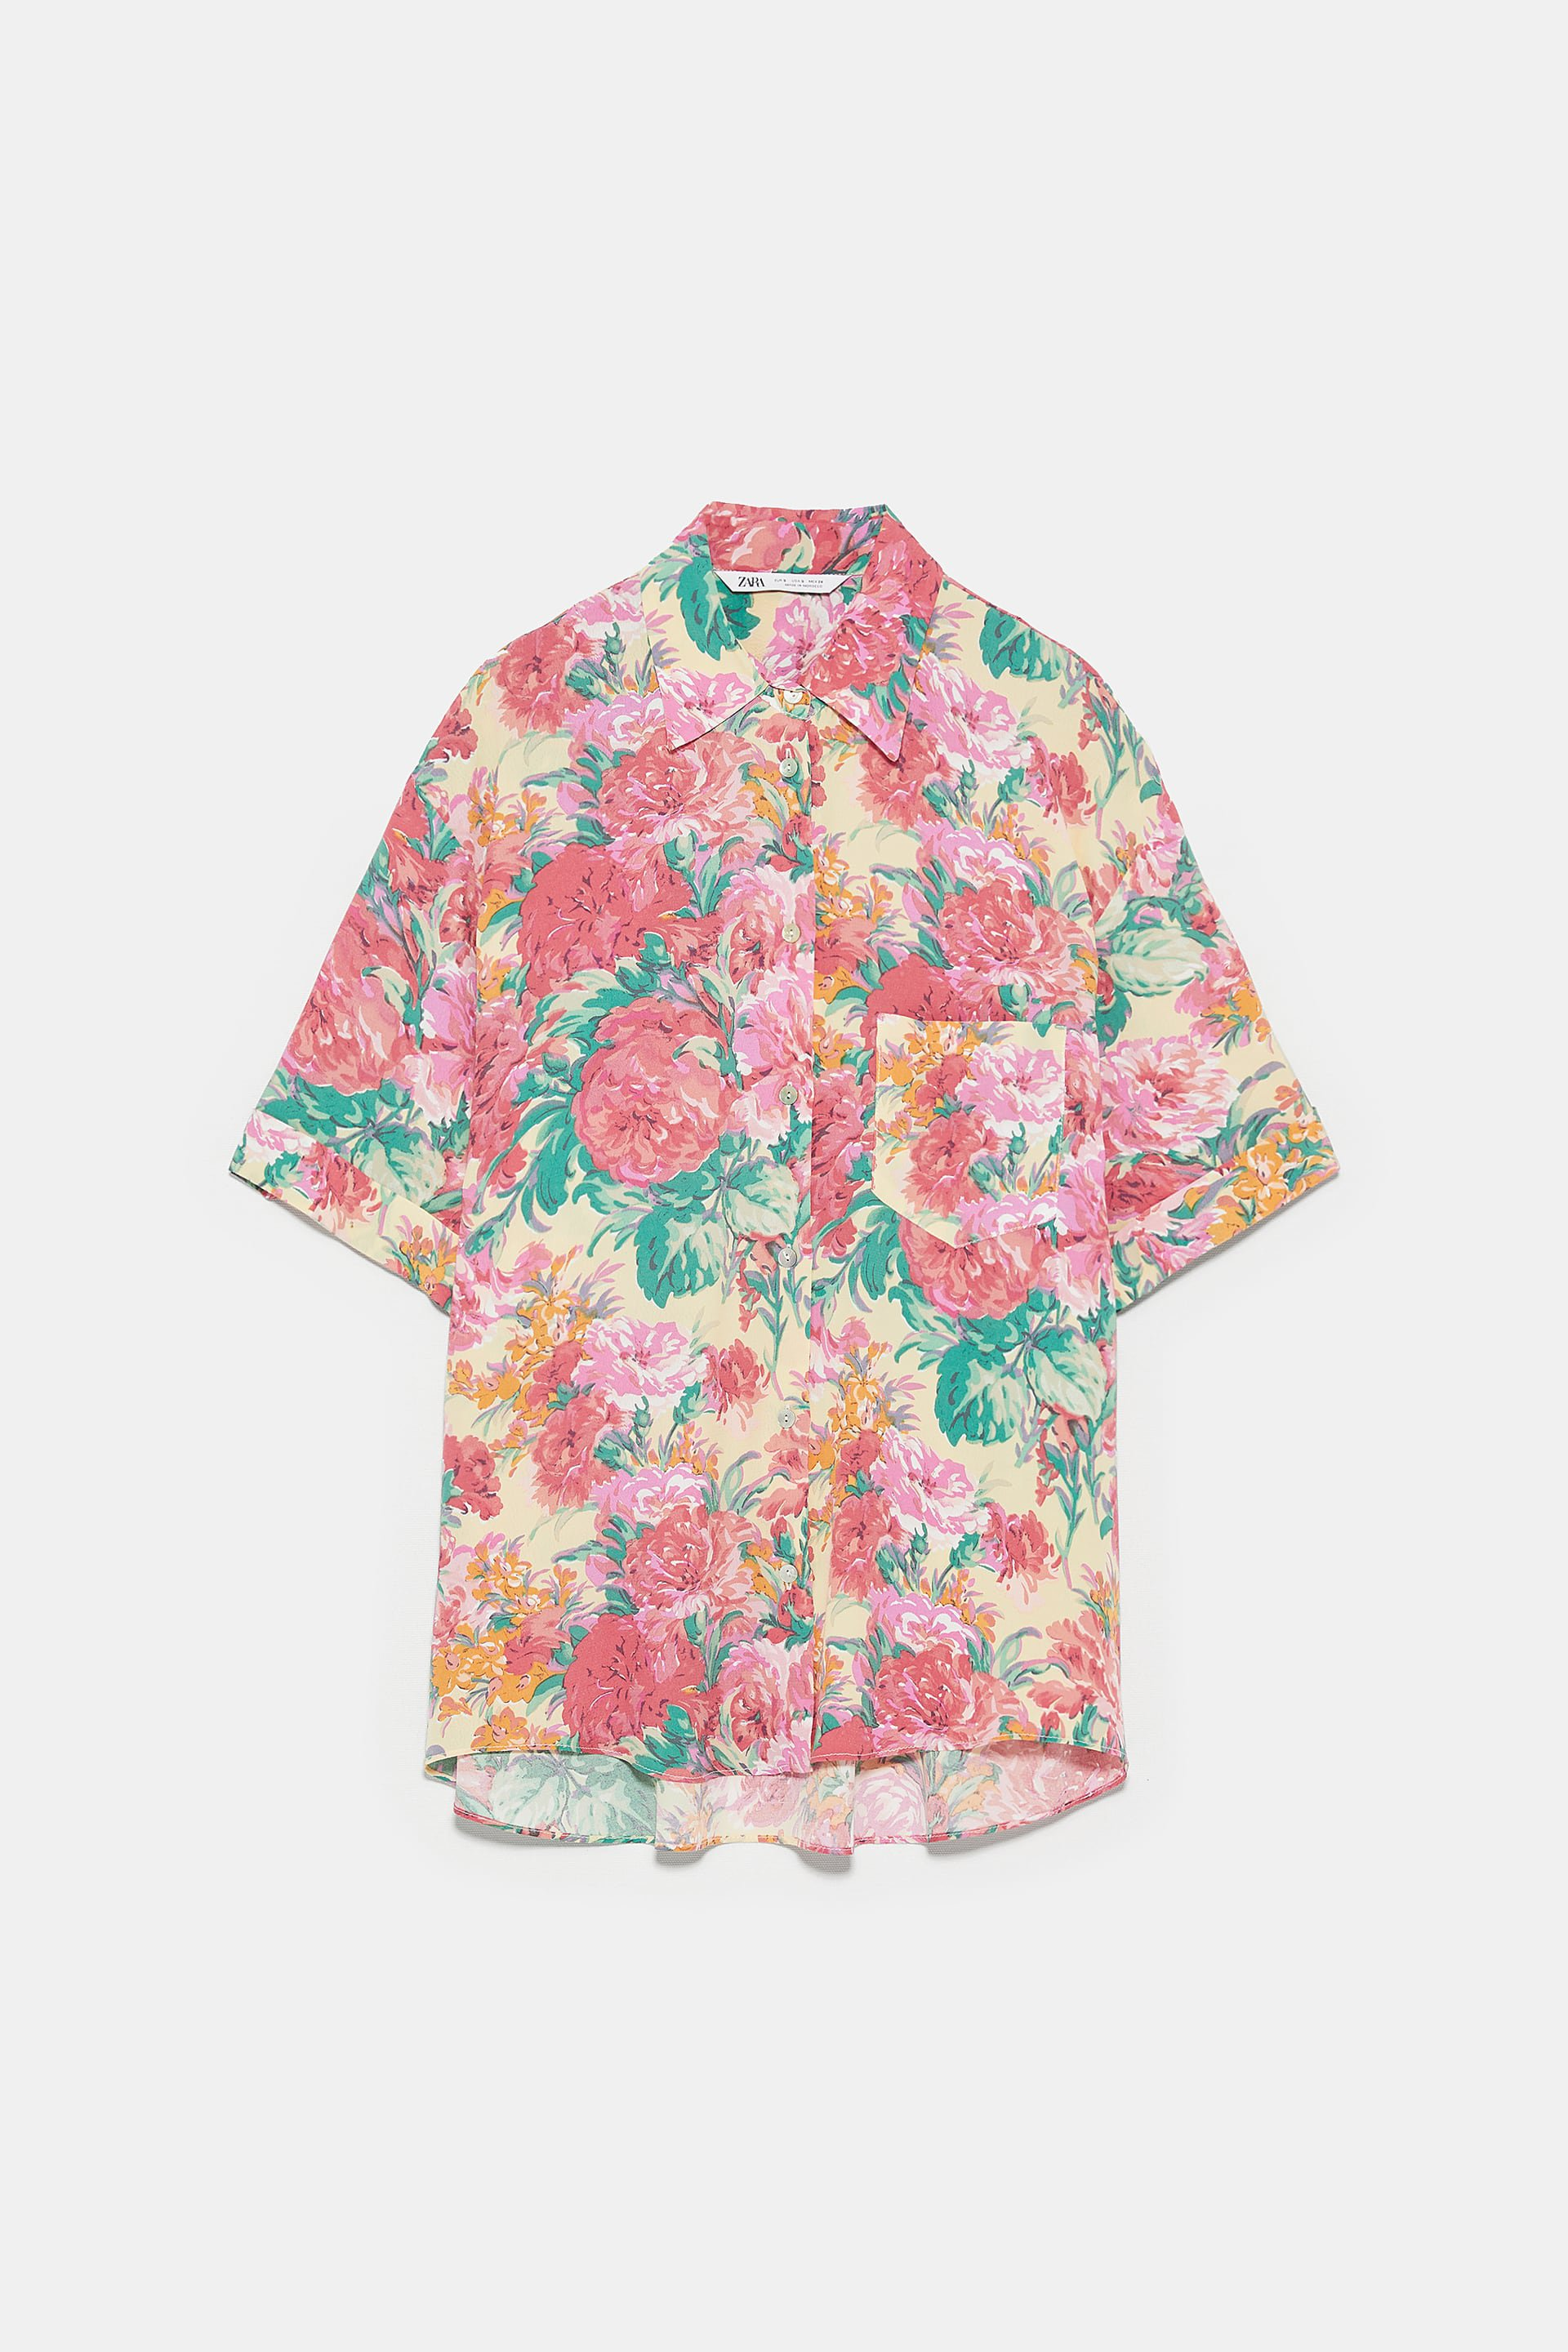 PRINTED BLOUSE - View All-SHIRTS | BLOUSES-WOMAN | ZARA United States